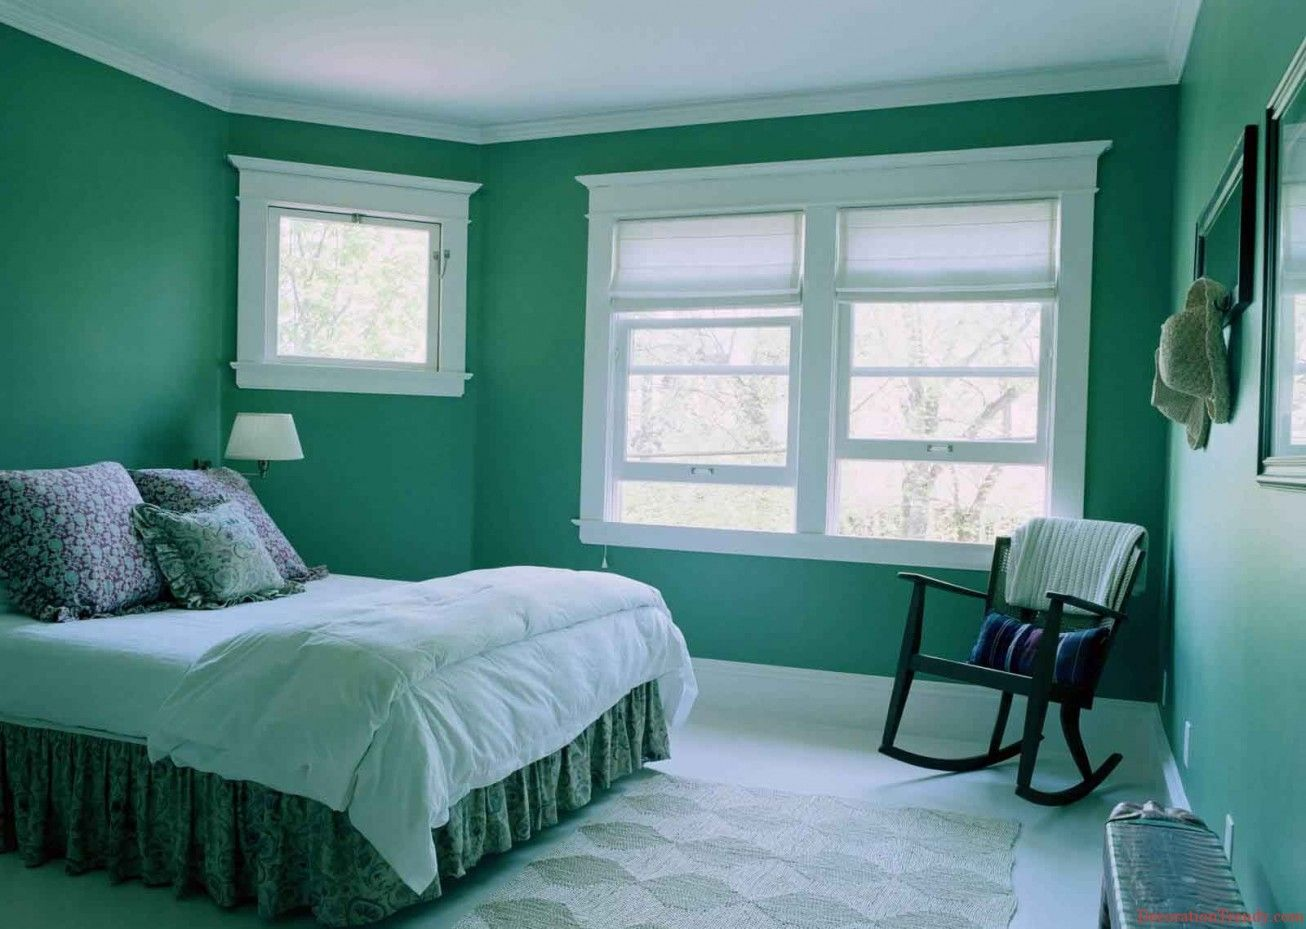 Drop Dead Gorgeous And Perfect Color For Bedroom Exciting Wall Ideas In Peacefully Green Walls Design Inspiration With